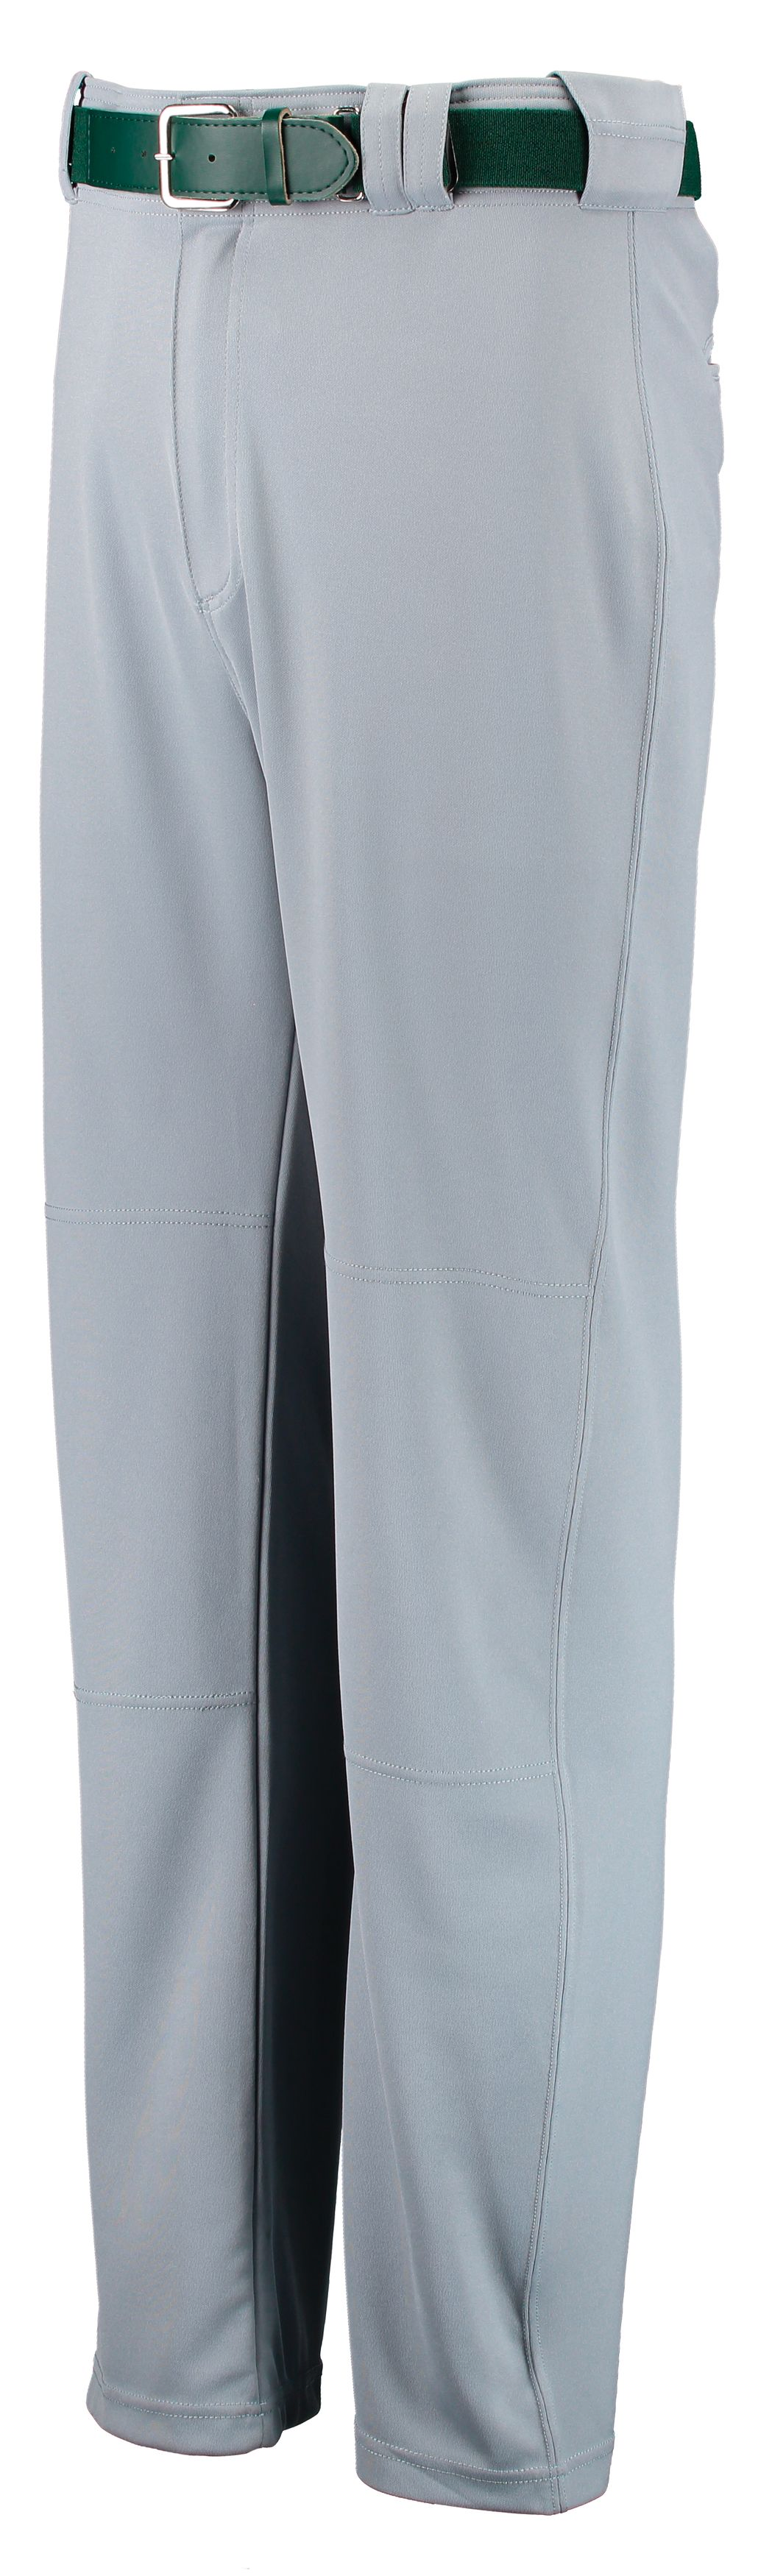 Youth Boot Cut Game Pant - Baseball Grey